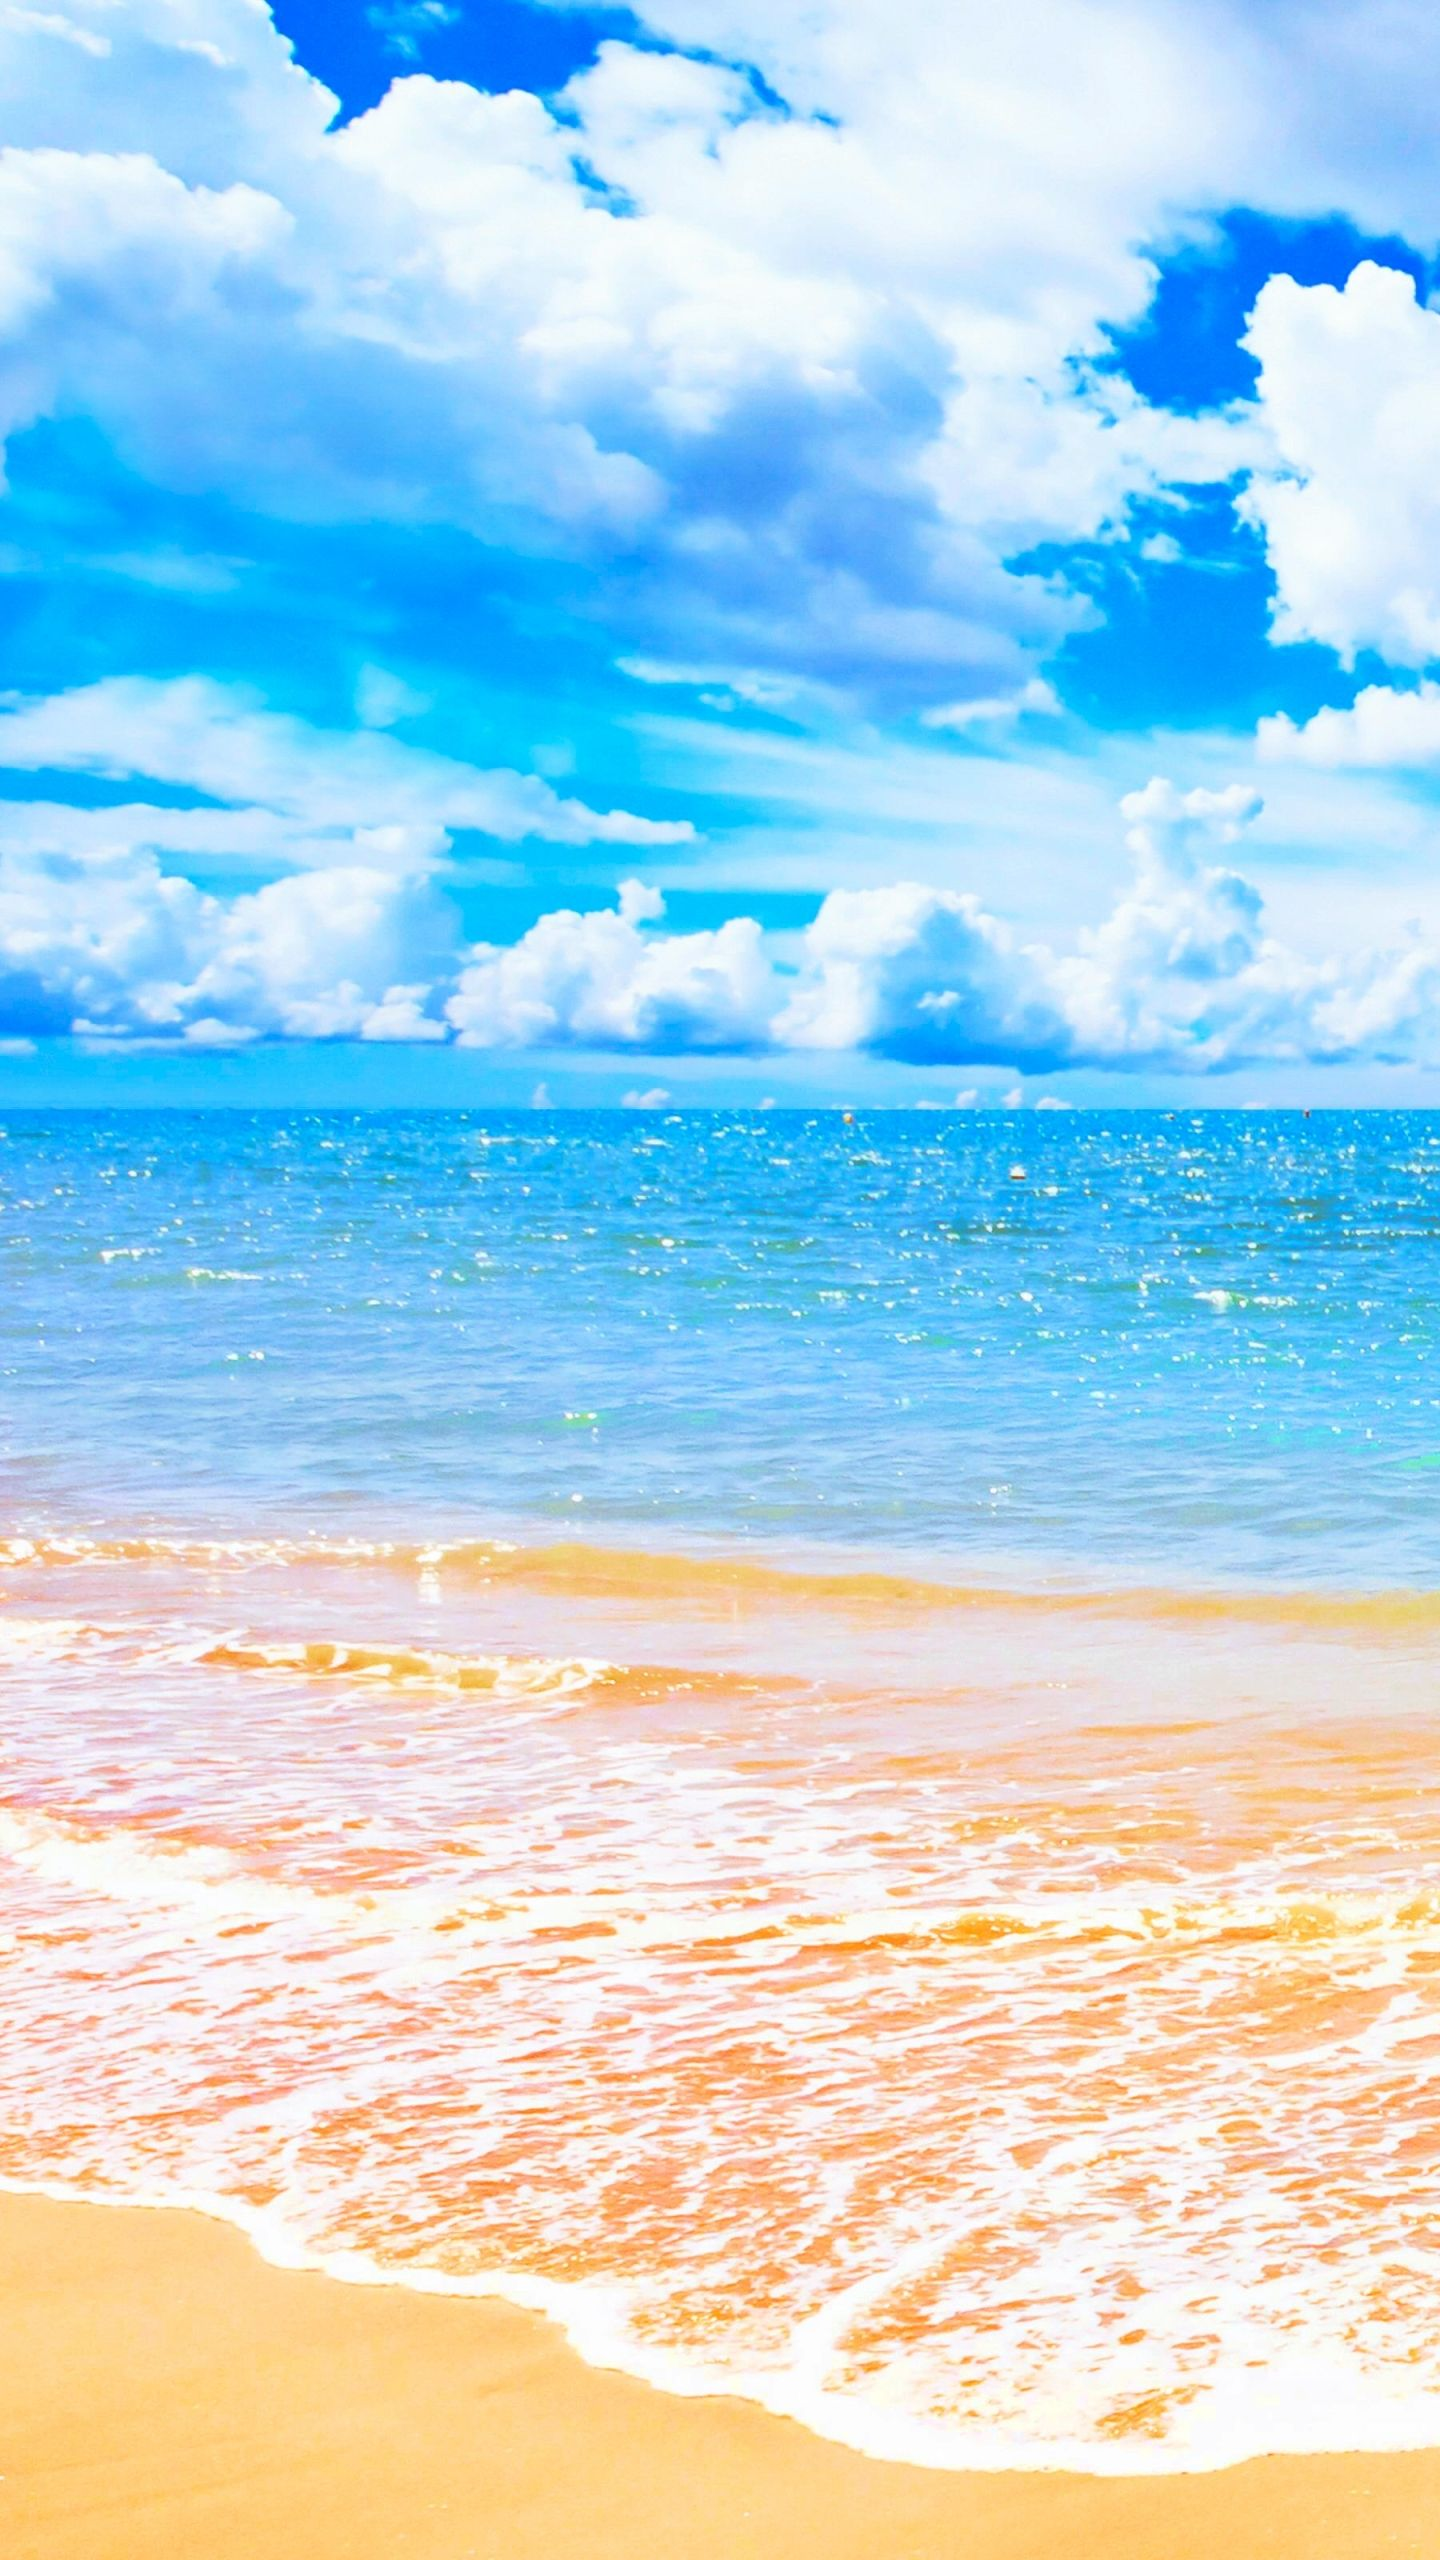 Blue Beach Wallpaper Gurukulindia